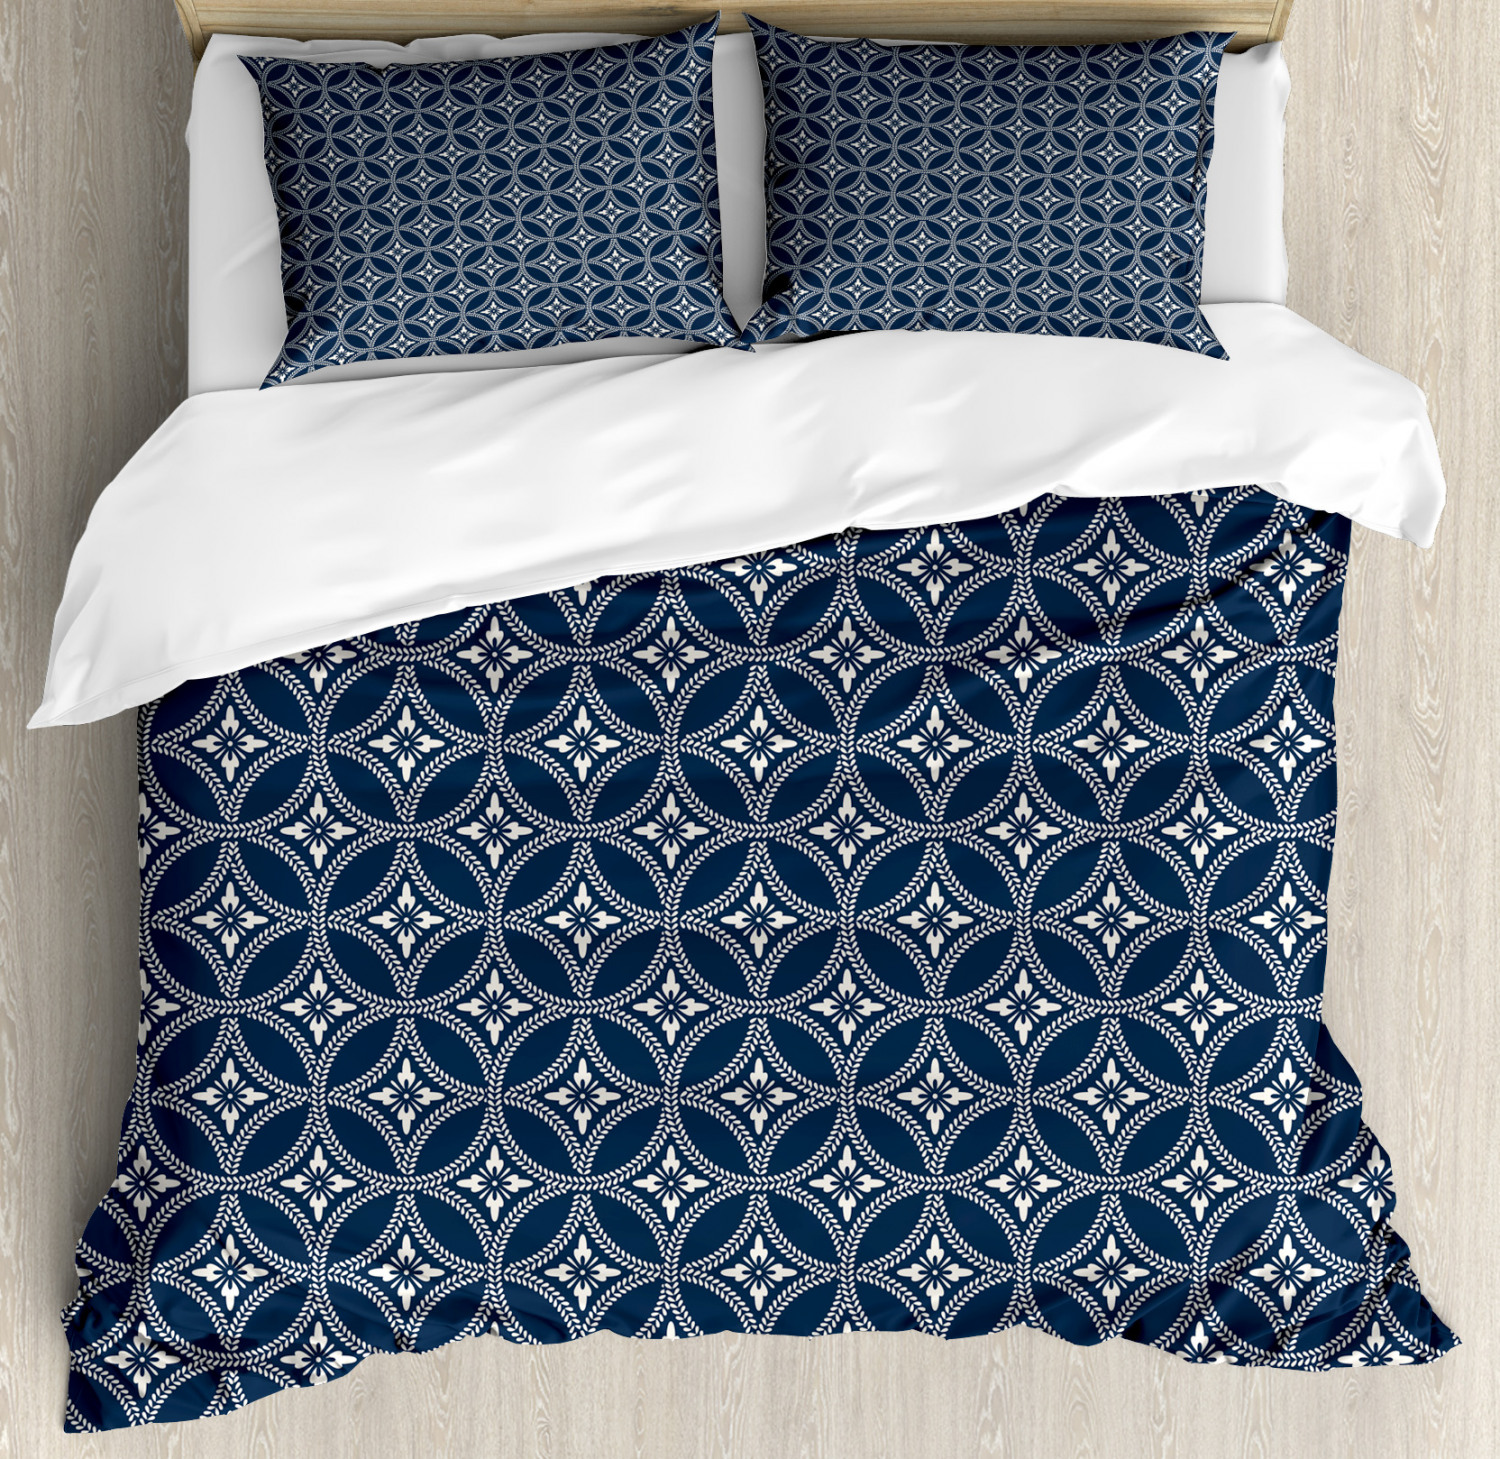 Geometric Duvet Cover Set with Pillow Shams Japanese Lotus Circle Print